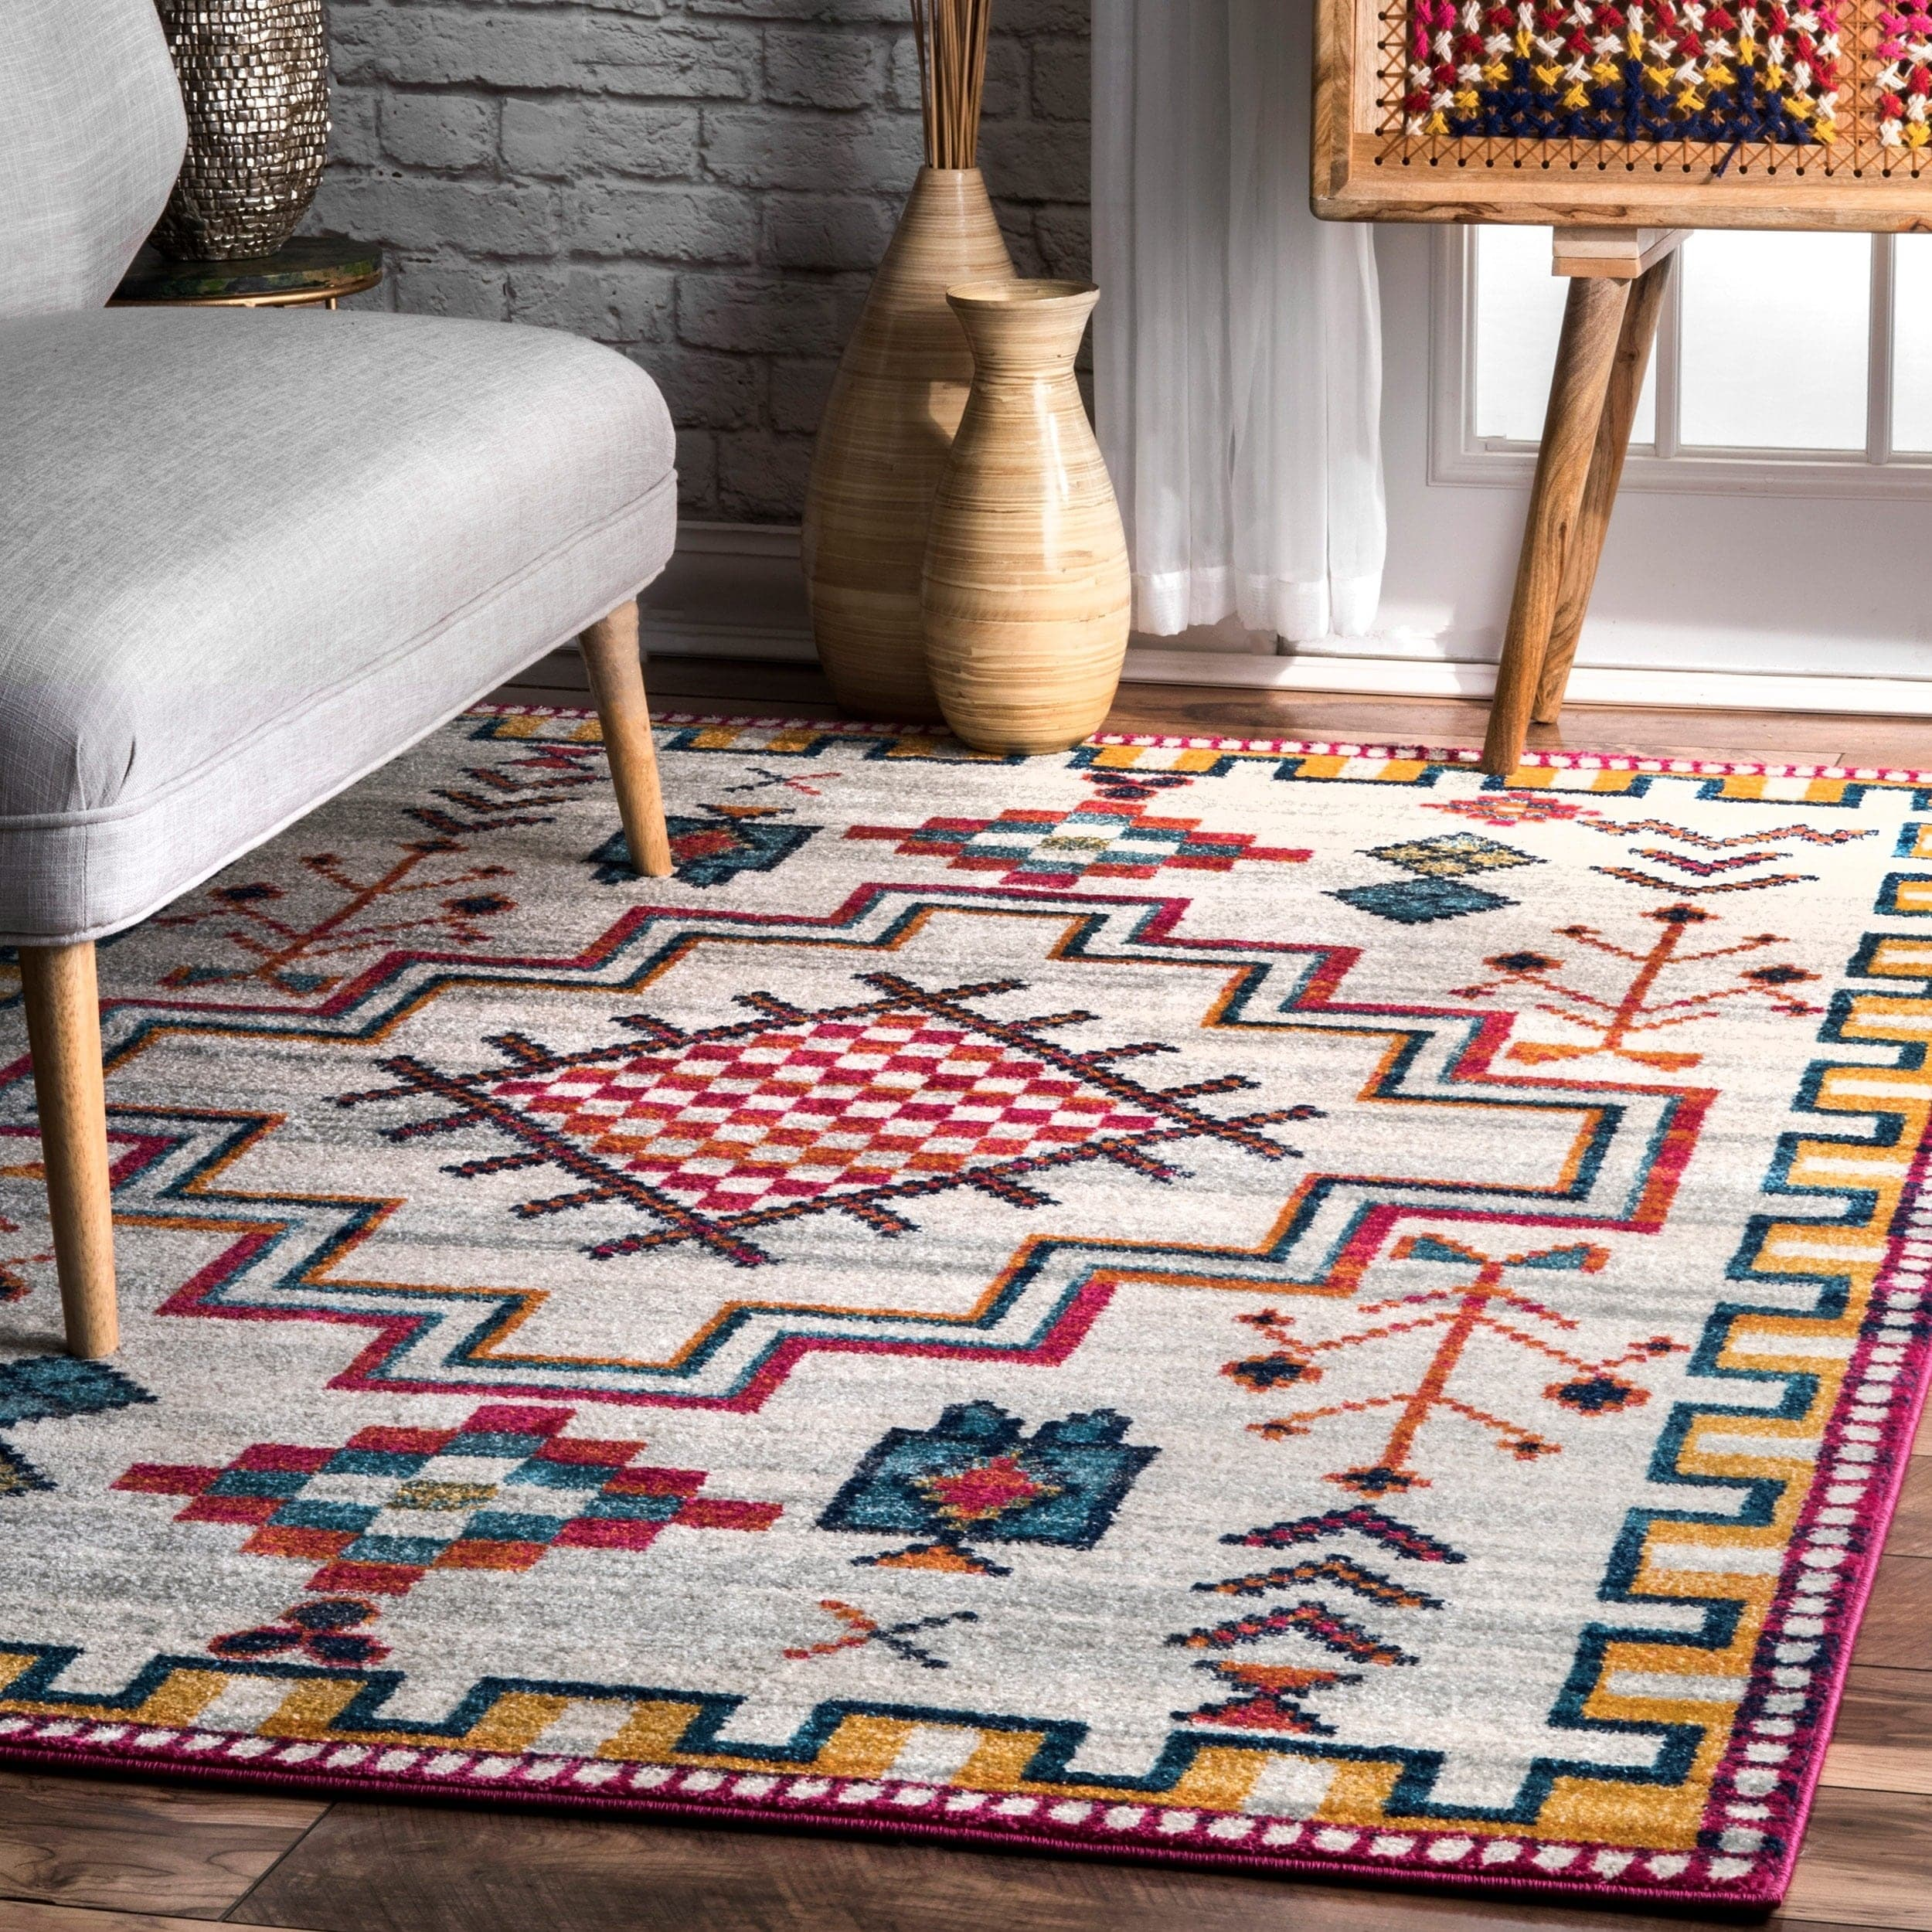 Image of: Shop The Curated Nomad Chattanooga Contemporary Southwestern Area Rug 9 X 12 9 X 12 Overstock 26457006